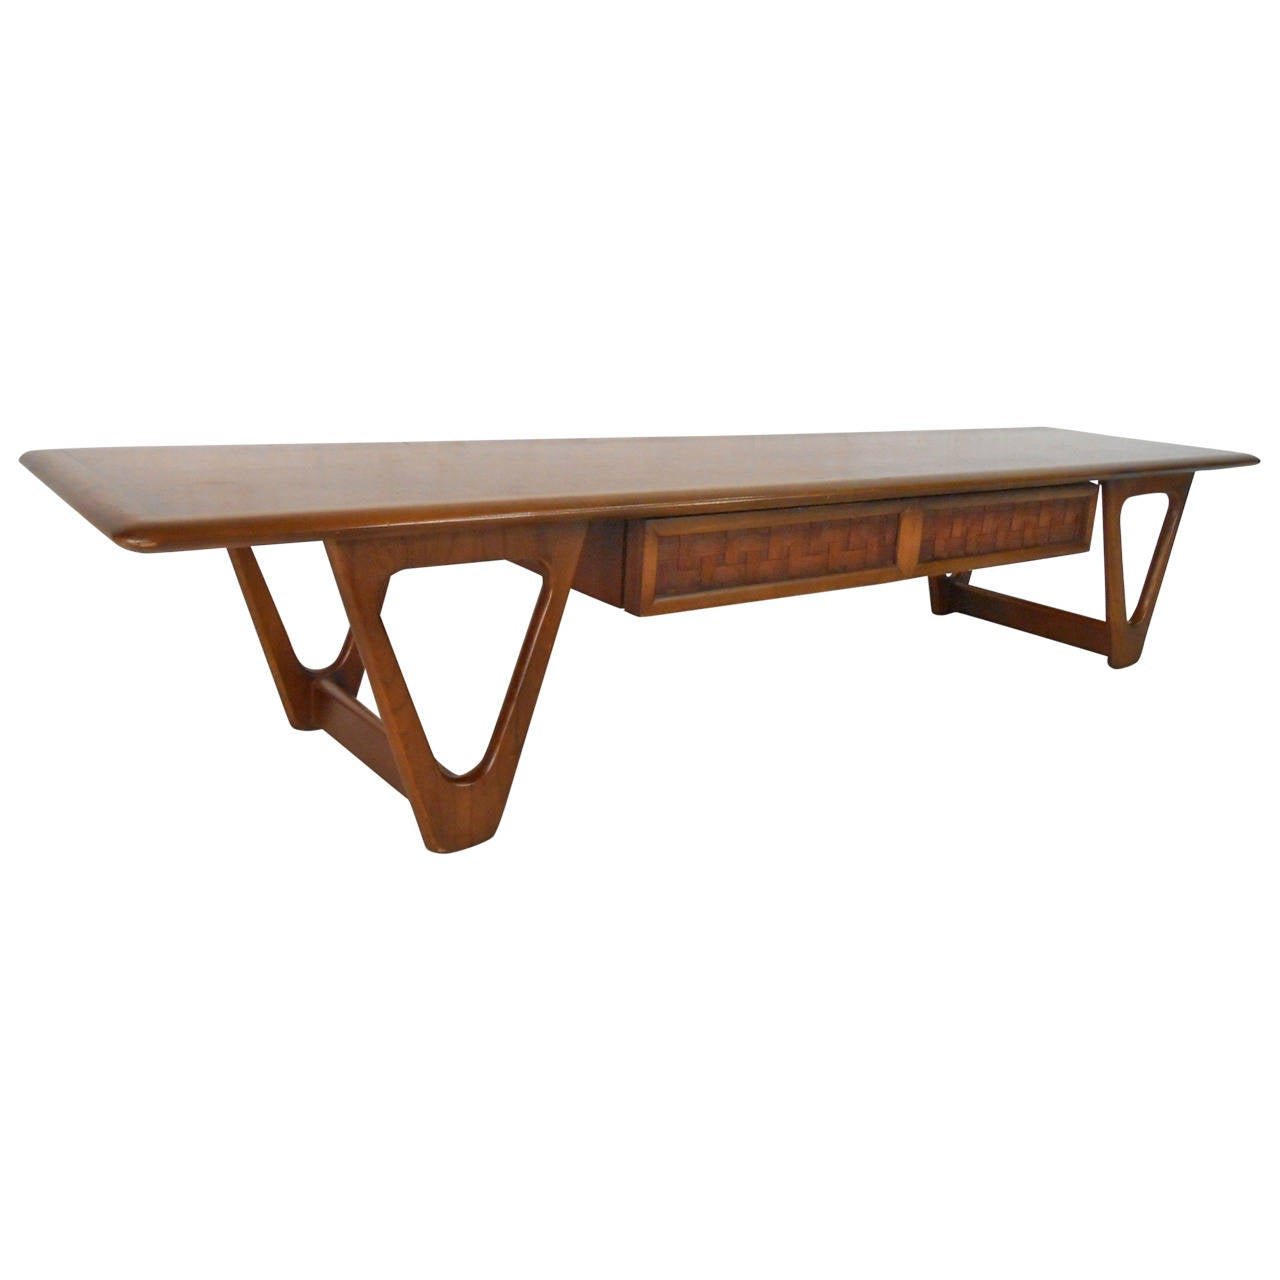 Mid century modern sculpted base warren church coffee table by lane furniture for sale at 1stdibs Mid century coffee tables